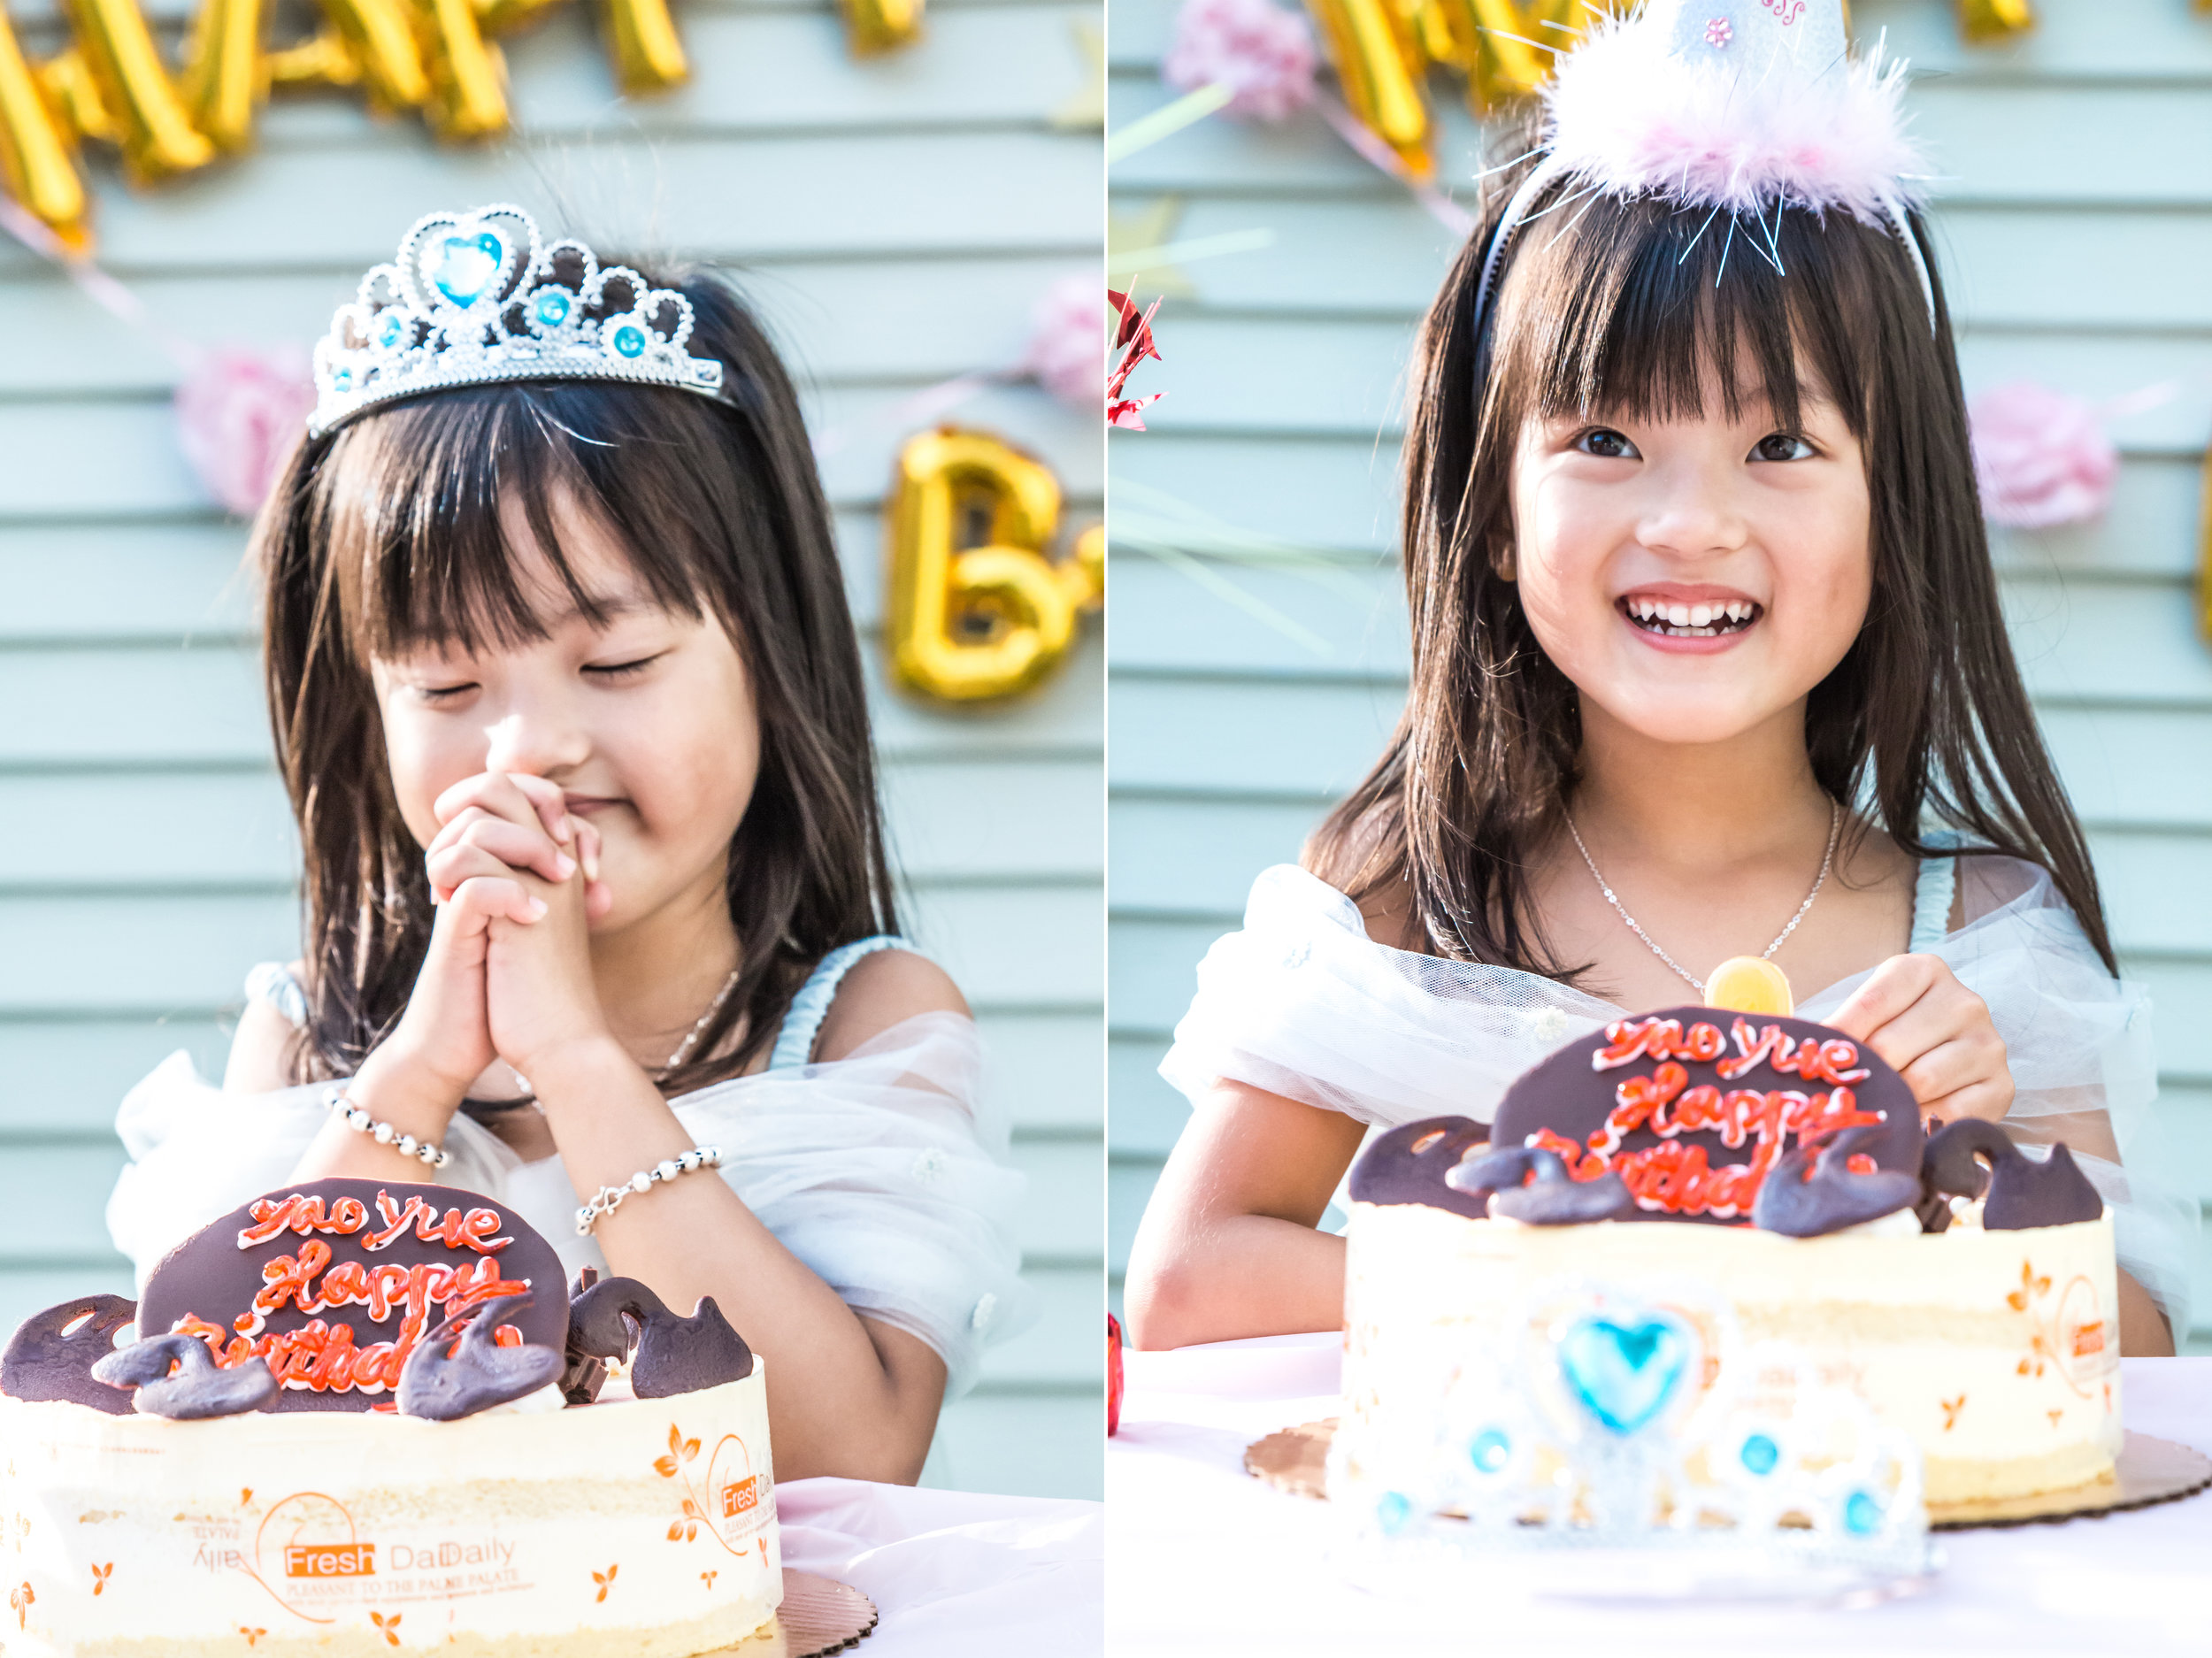 a-summer-birthday-eva-loh-10.jpg